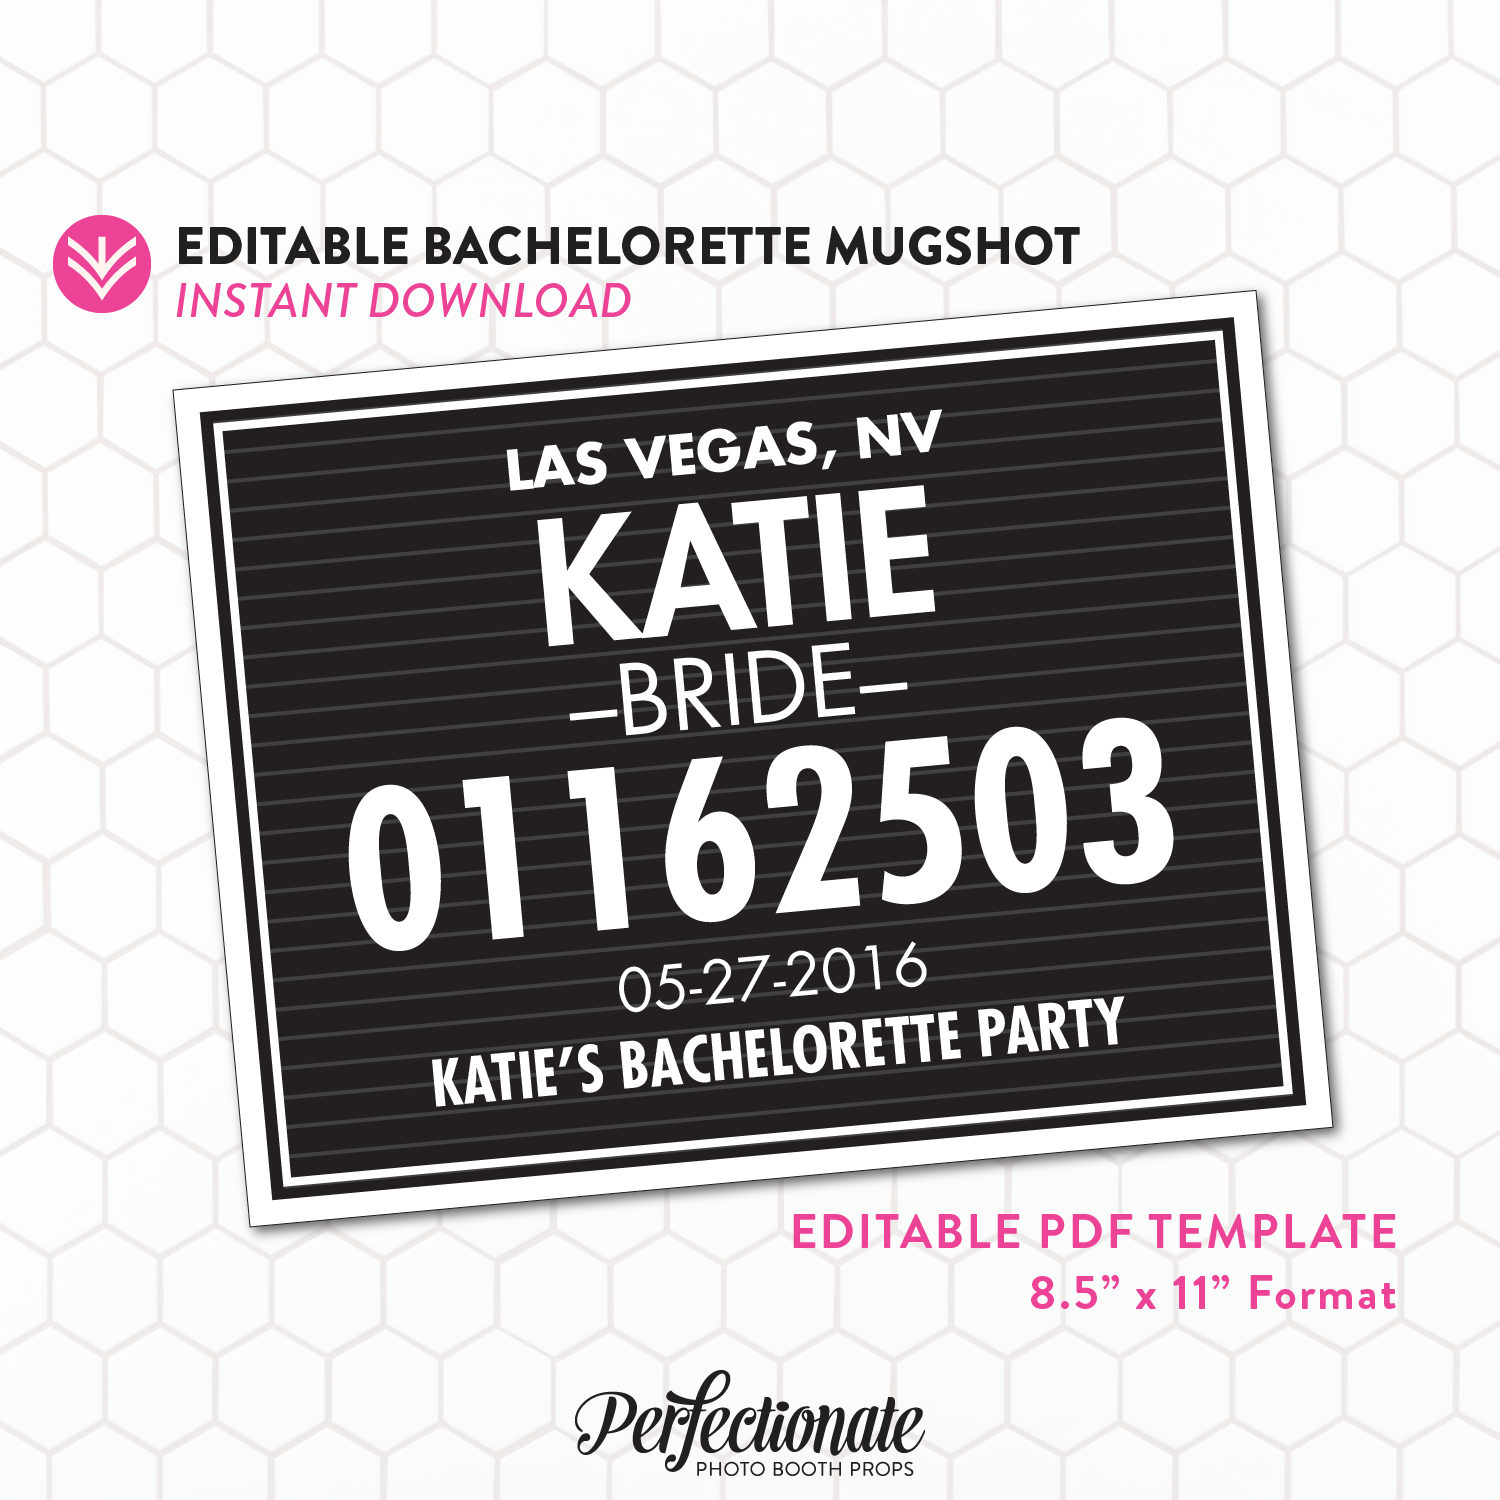 DIY Bachelorette Mugshot Sign Template Unlimited Personal | Etsy